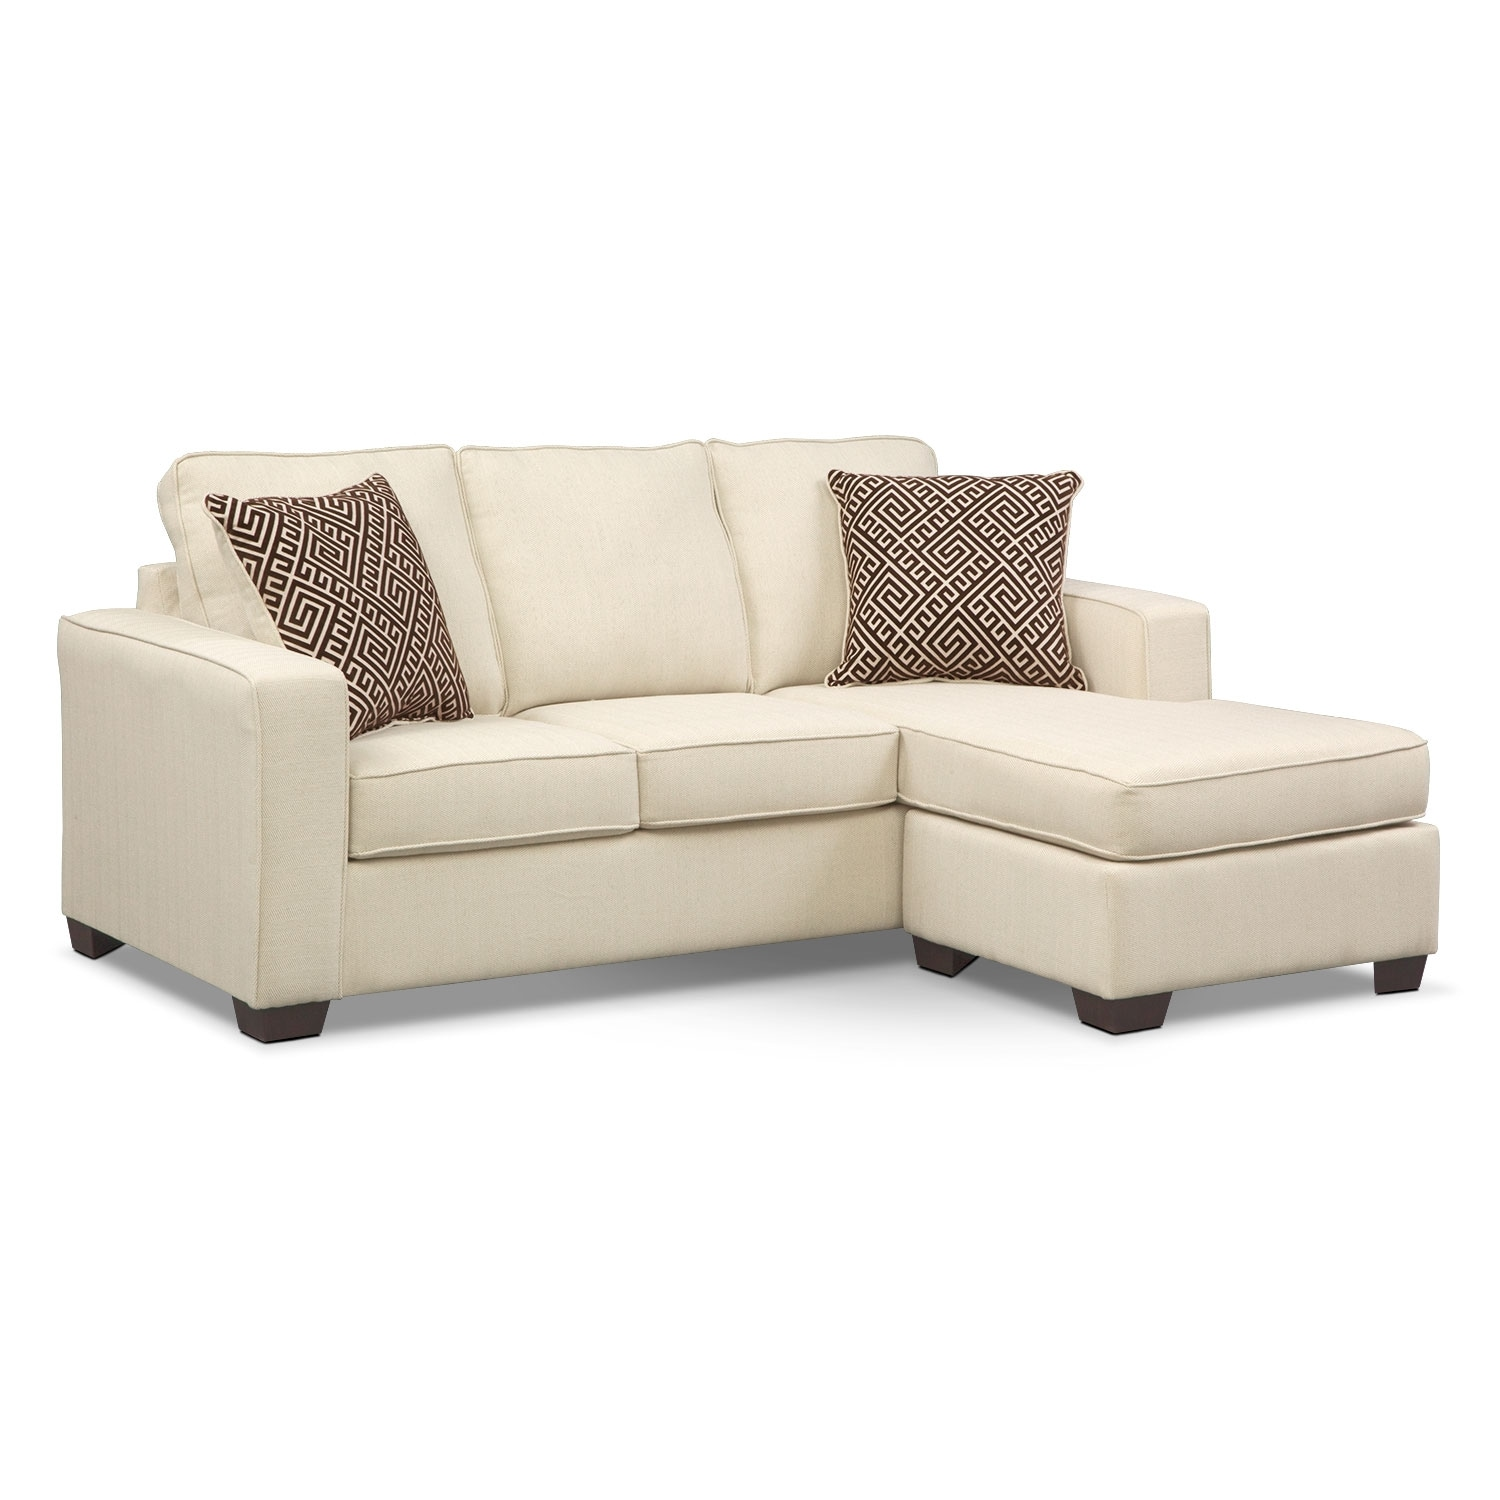 Sterling memory foam sleeper sofa with chaise beige Sleeper sectional